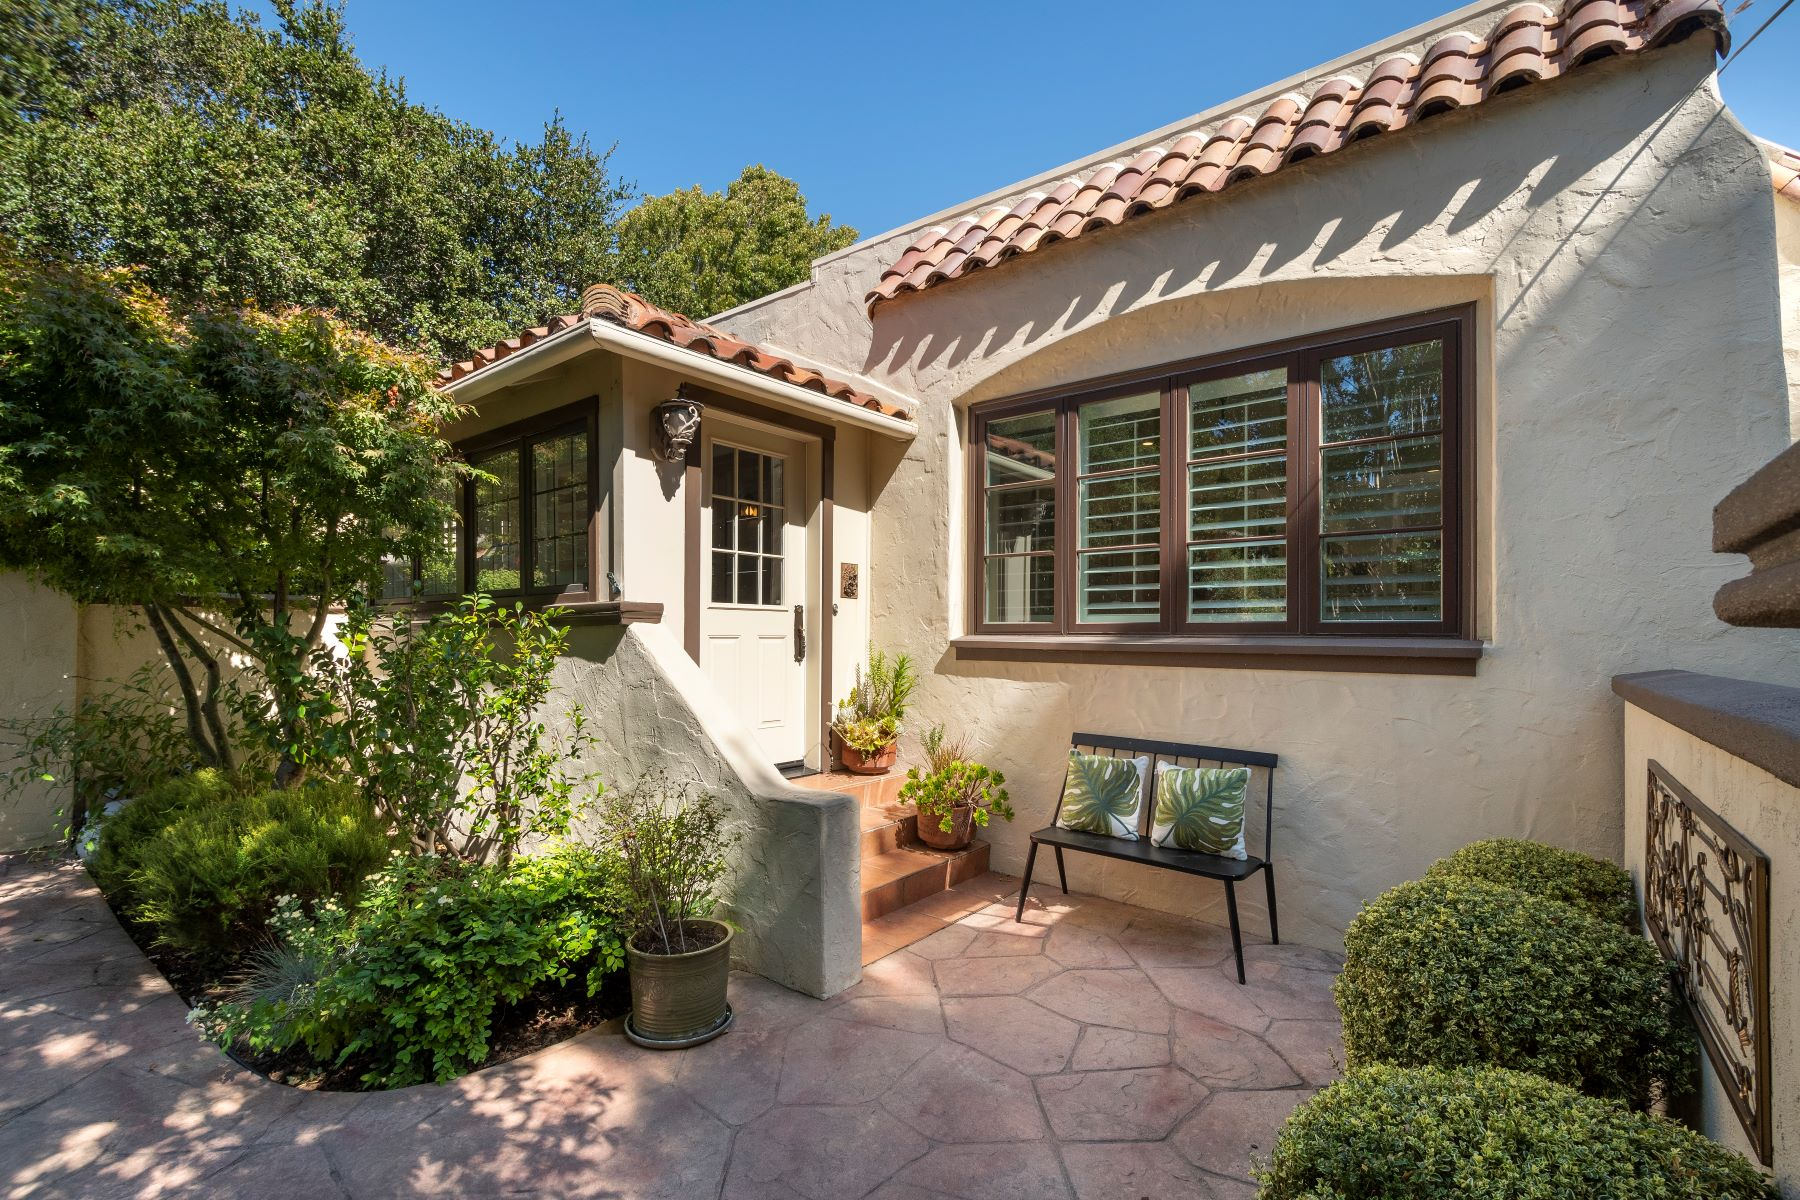 Single Family Homes for Sale at Mediterranean Style Home Filled with Charm 813 Covington Road Belmont, California 94002 United States